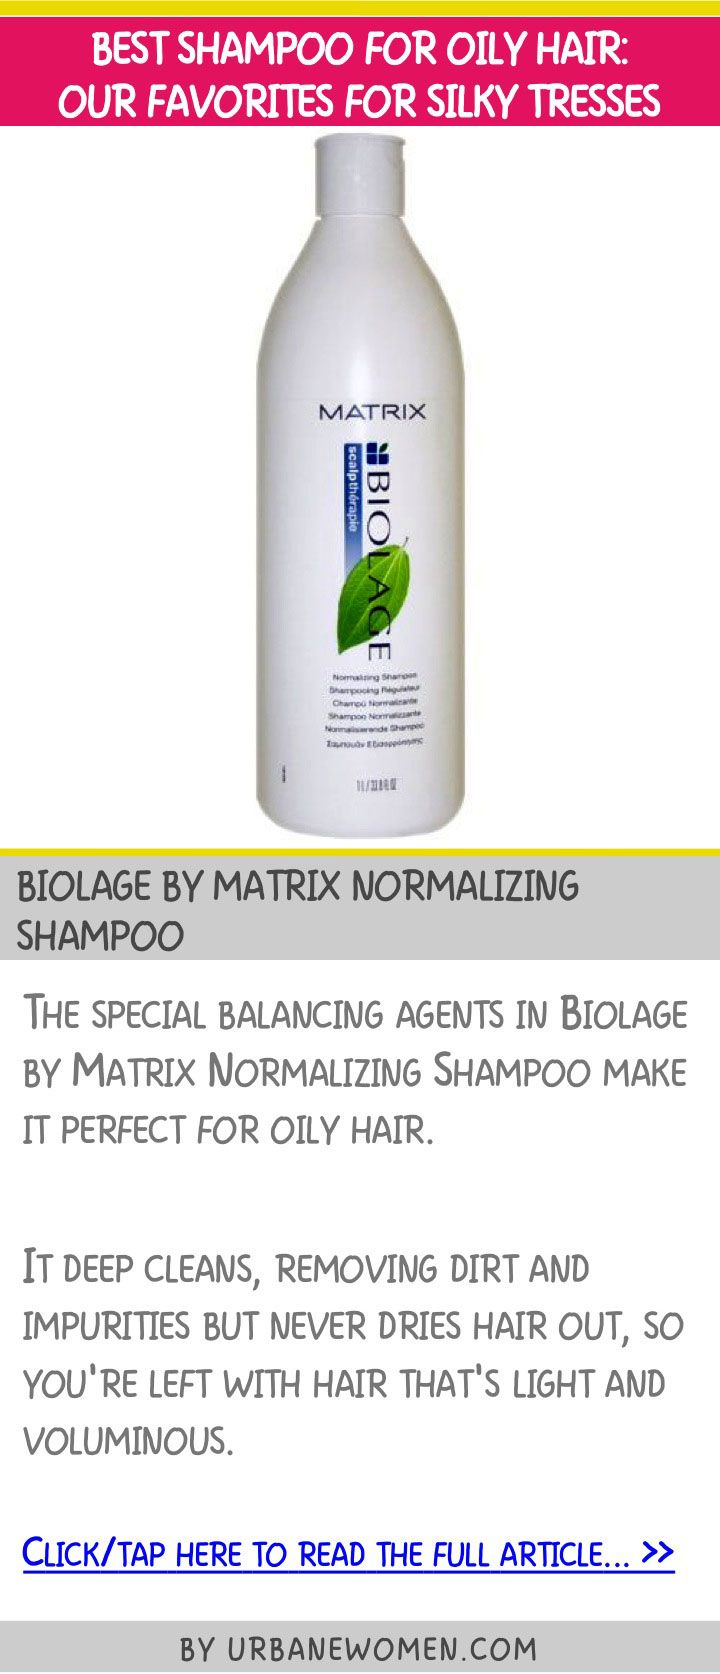 Best shampoo for oily hair: Our favorites for silky tresses - Biolage by Matrix normalizing shampoo